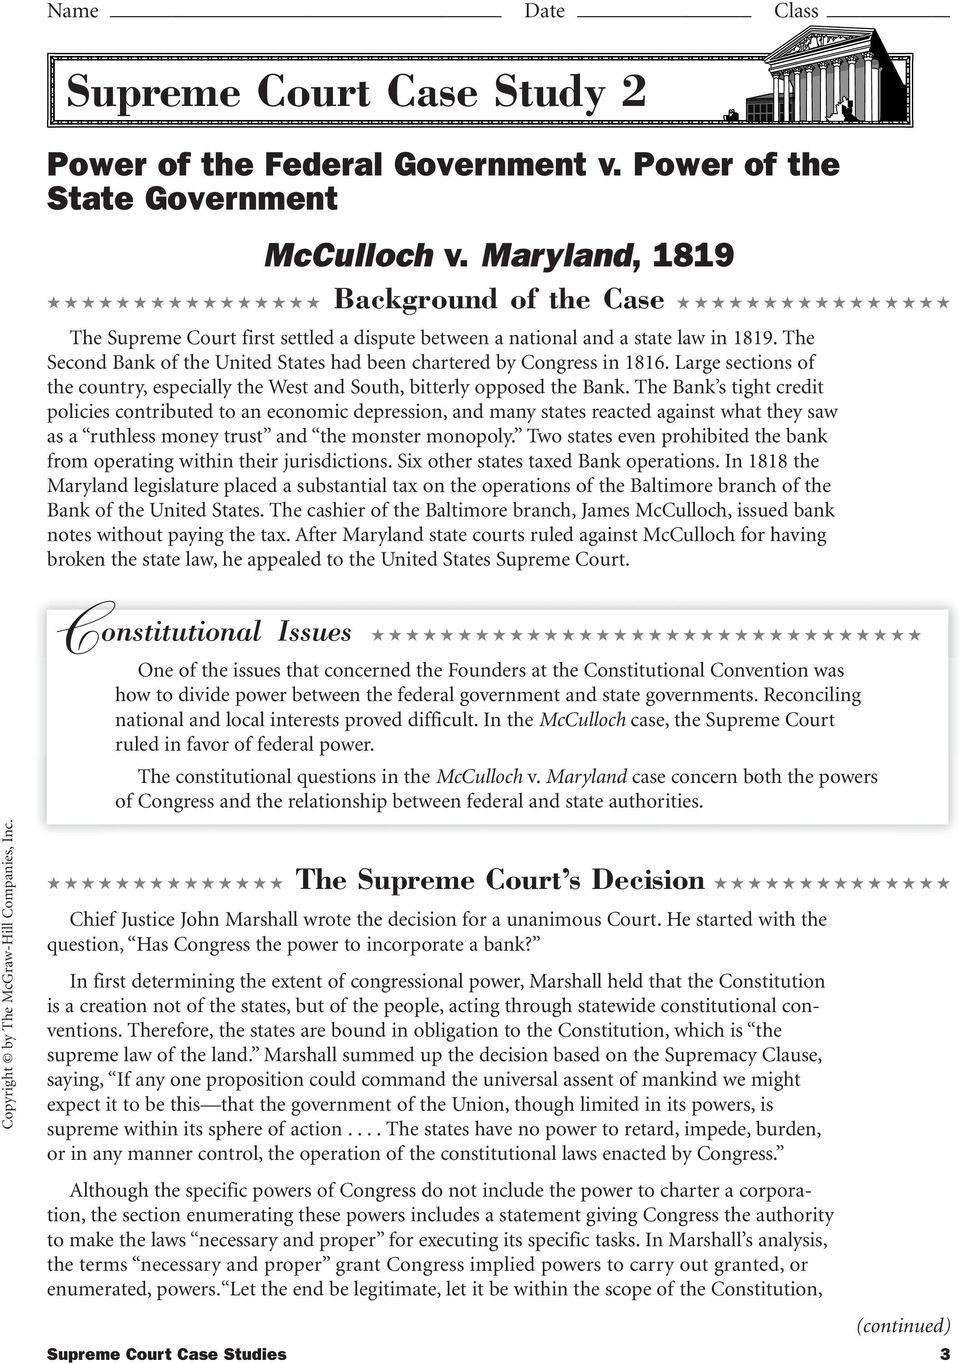 Supreme Court Case Analysis Worksheet Rringband – Constitutional Convention Worksheet